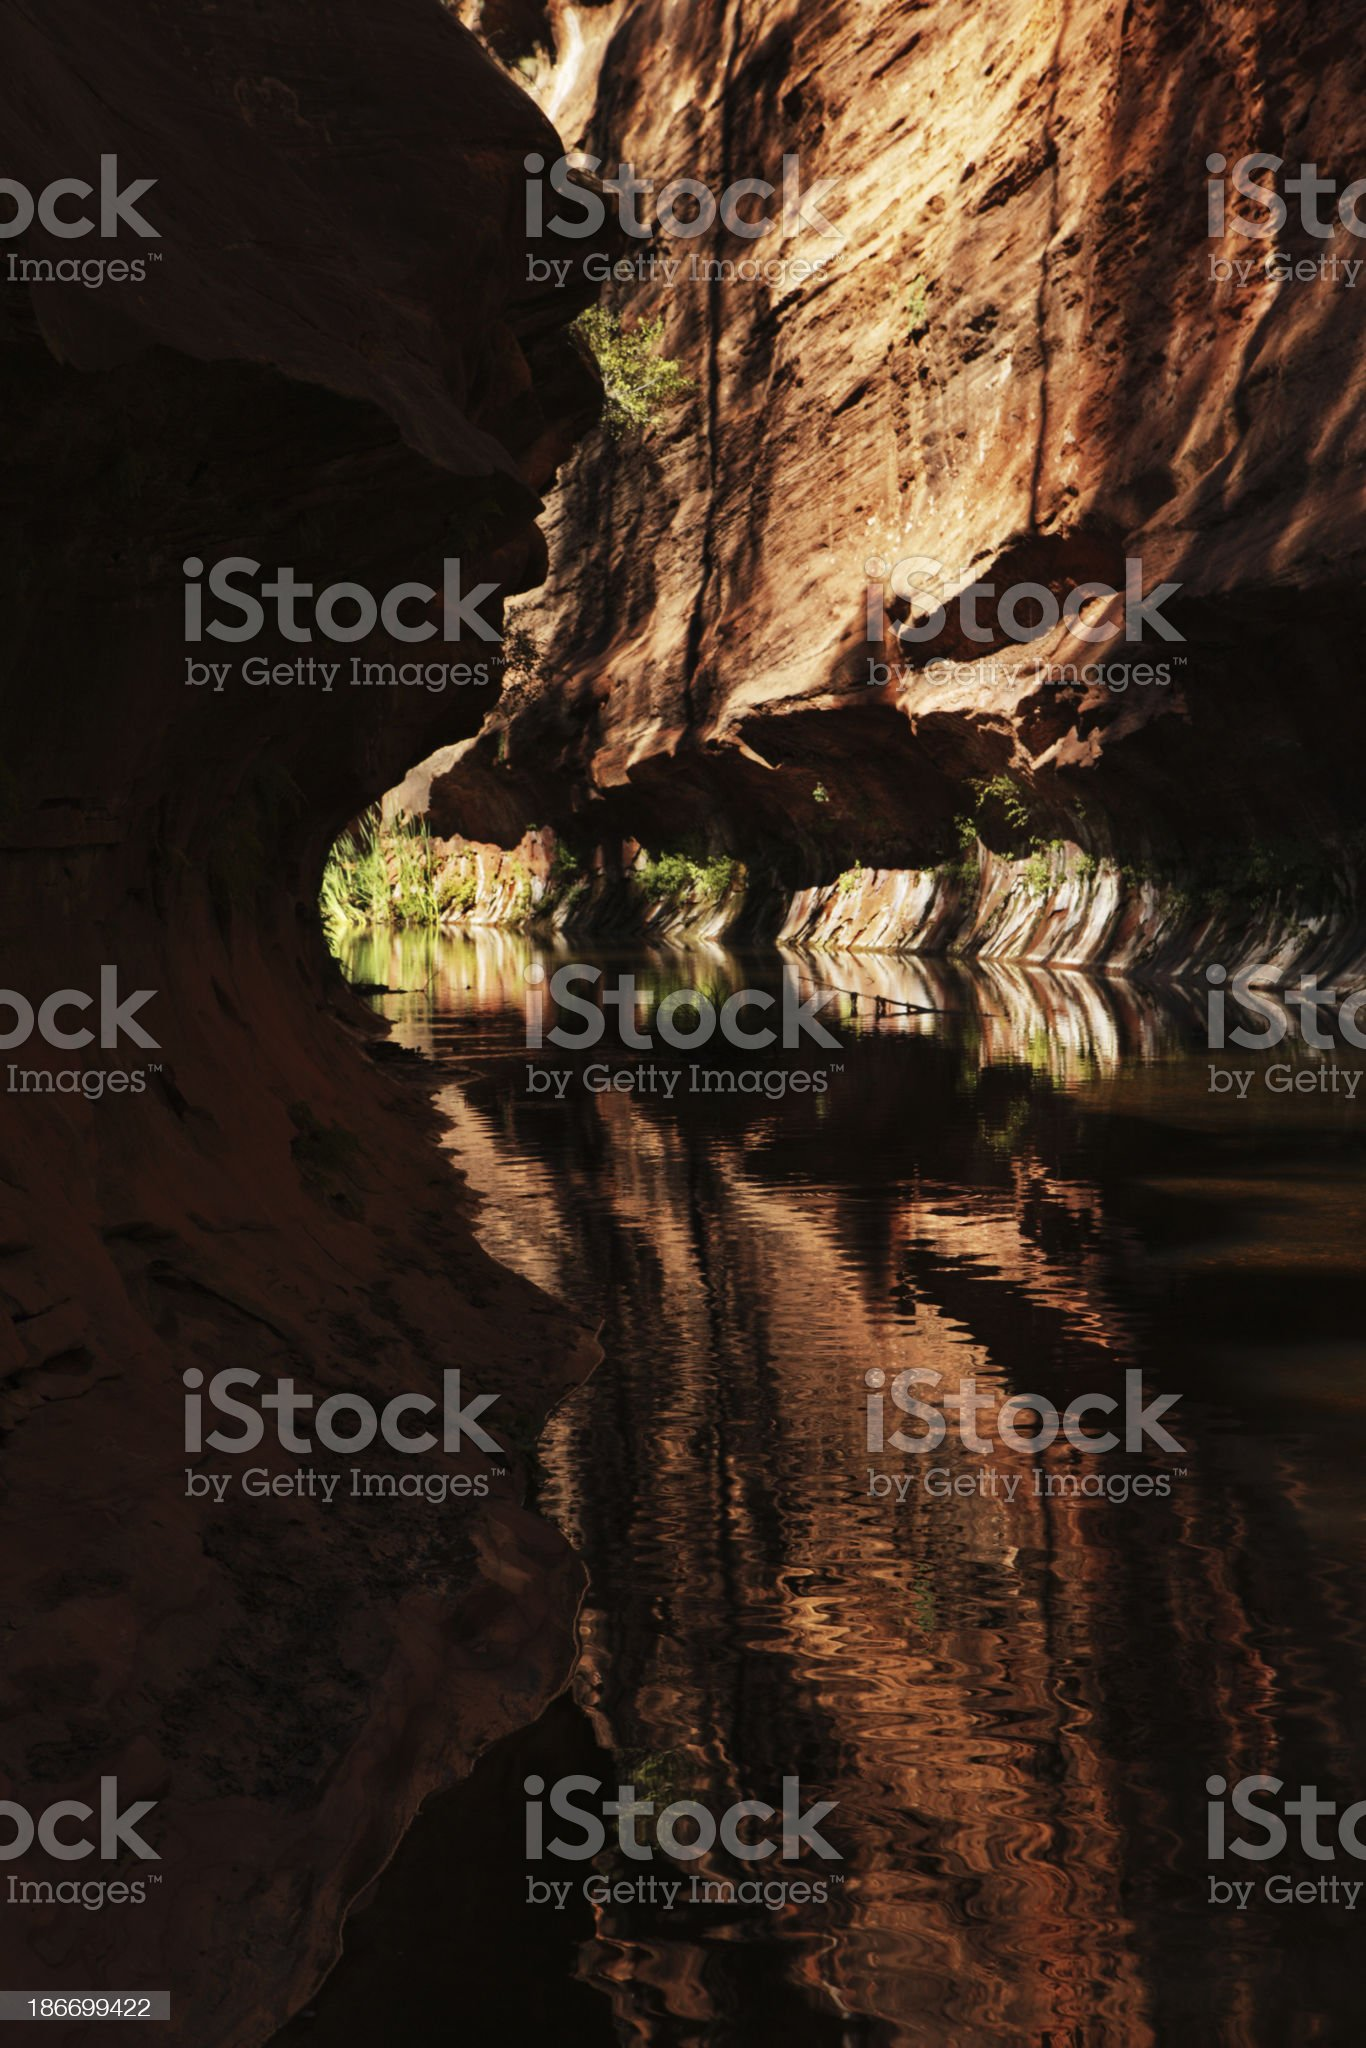 Red Rock Slot Canyon Cliff Stream Reflection royalty-free stock photo